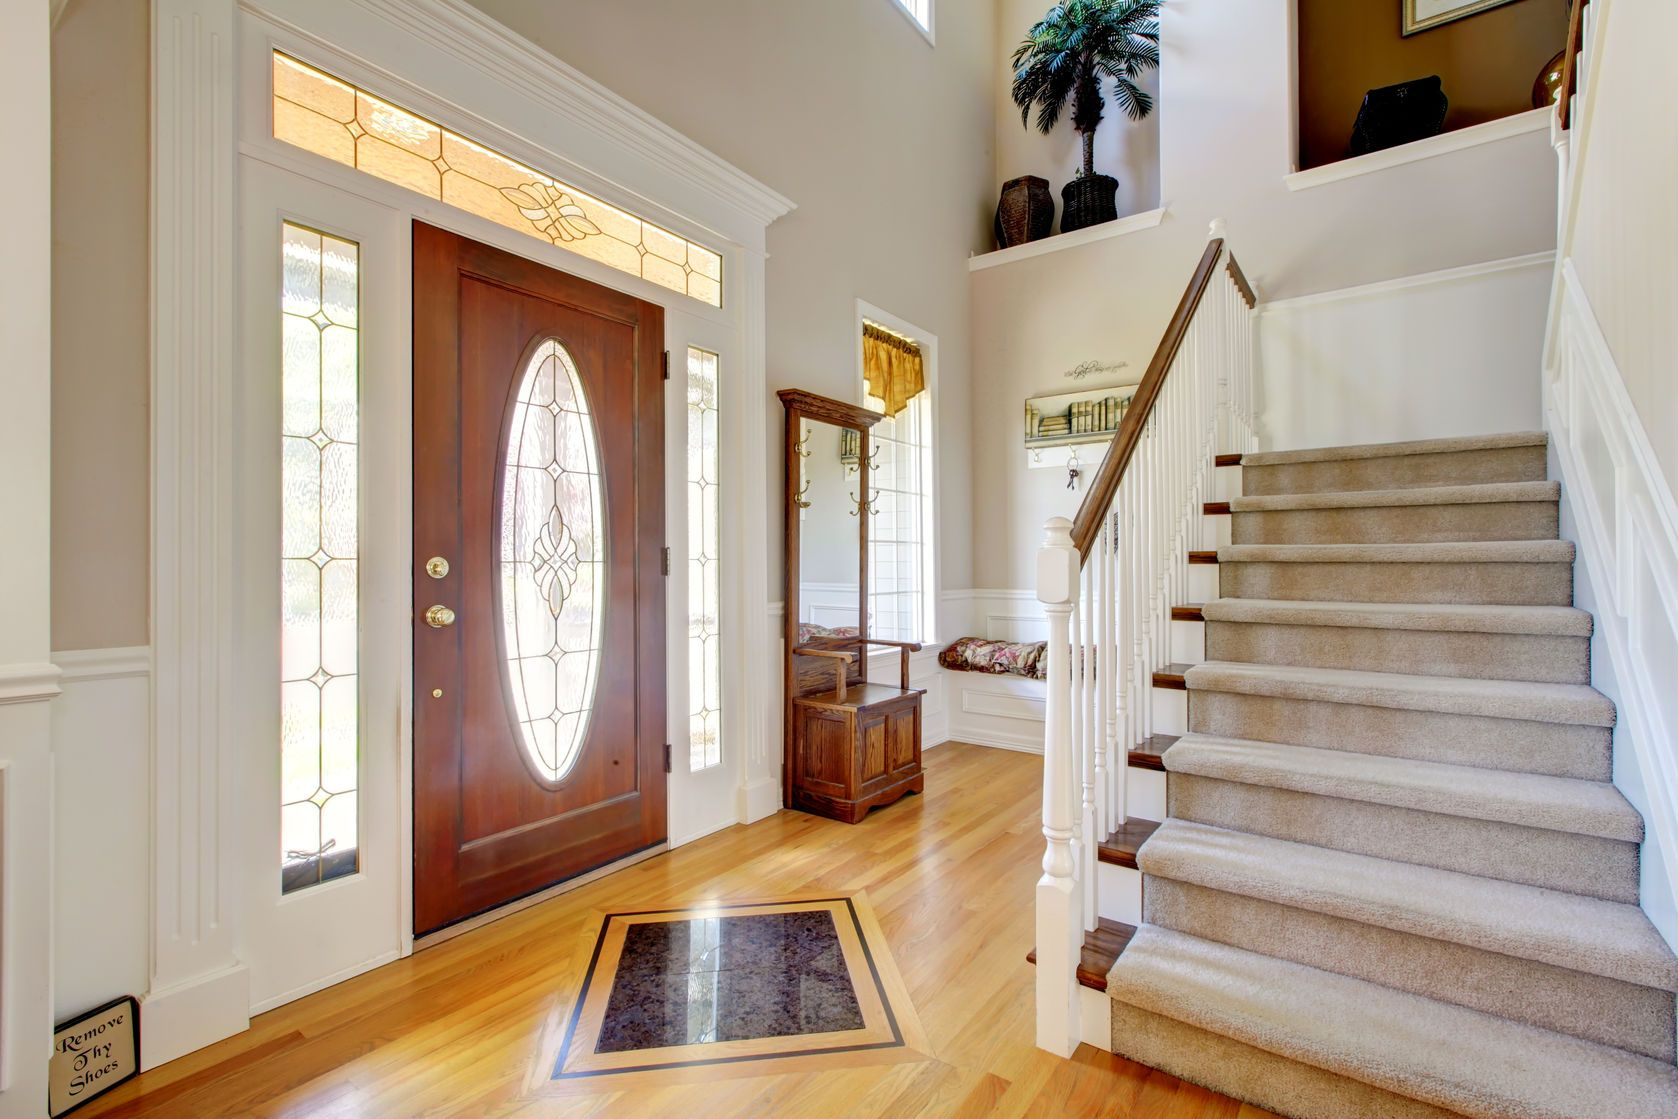 Home Entry Way Carpeted Stairs Front Doors With Windows Interior Staircase Glass Front Door